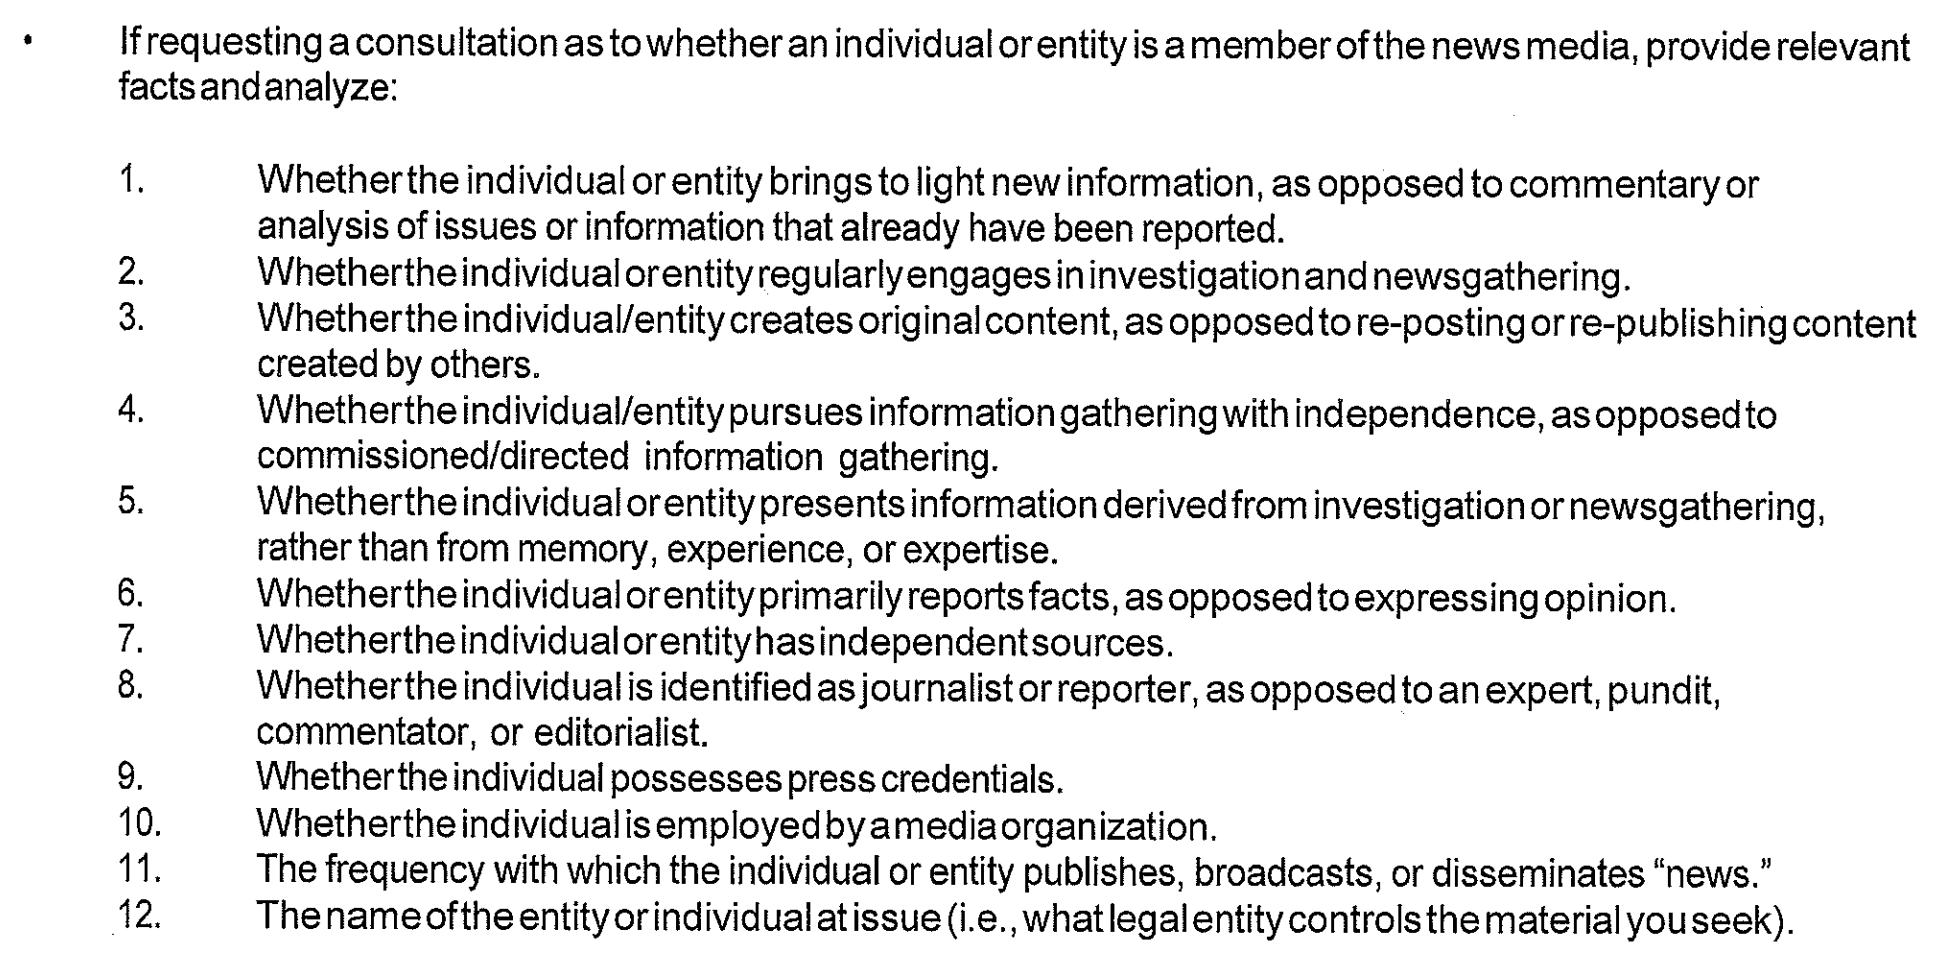 """List of 12 factors from unredacted """"News Media Policy Consultation"""" form"""